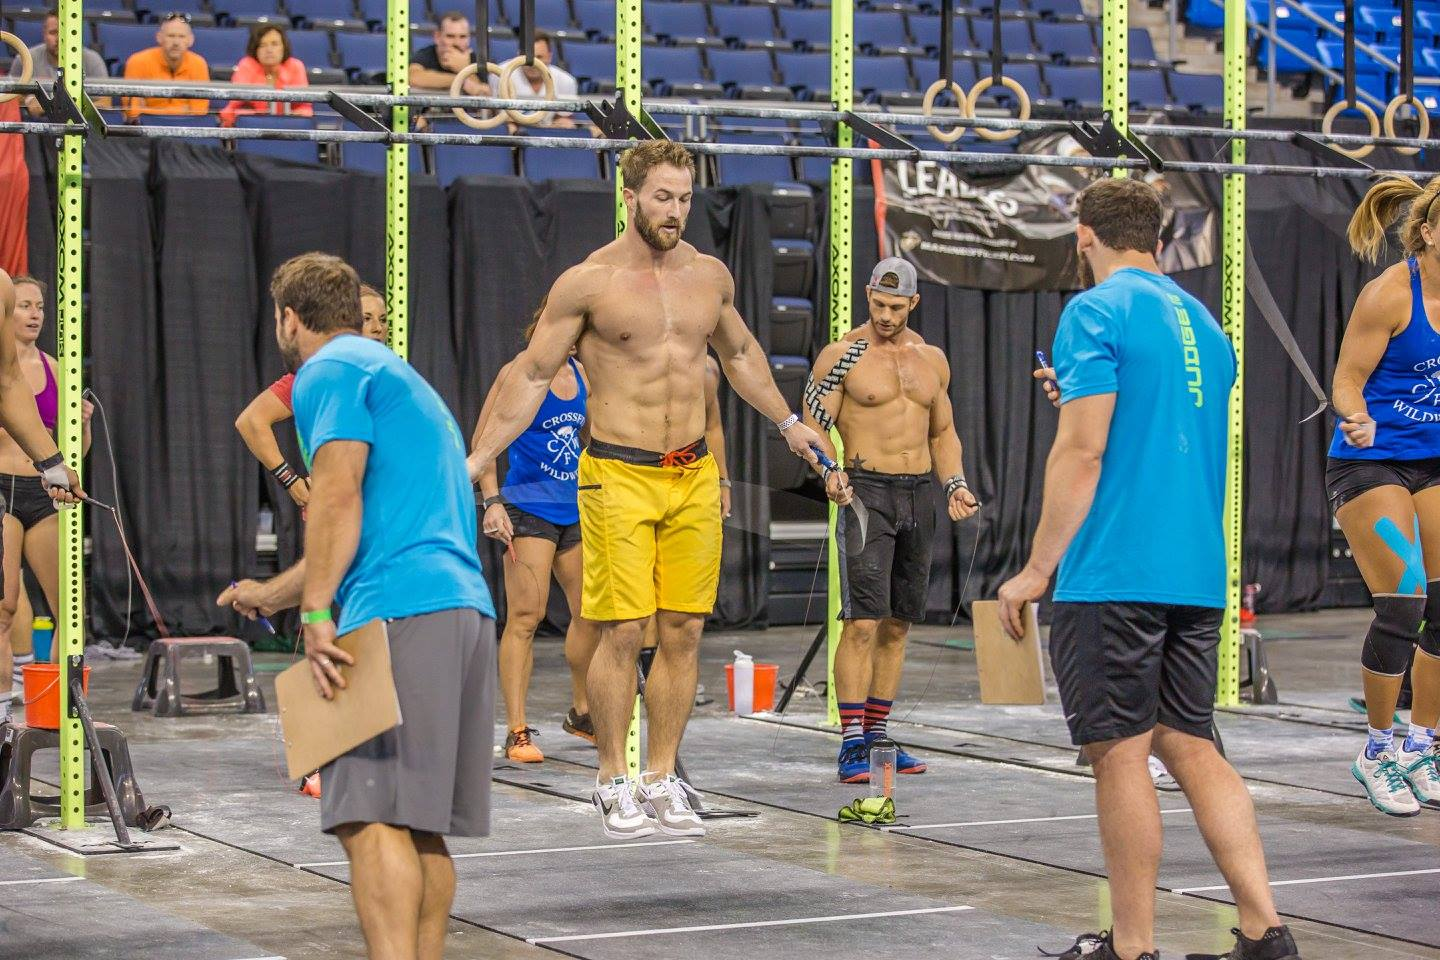 """Chris Harbison   I started doing CrossFit as my """"cardio"""" for my regular weightlifting. However, after about a week of doing CrossFit I stopped doing my regular workout routine and focused only on CrossFit. To say I'm addicted would be an understatement  To learn more about Chris,  click here!"""